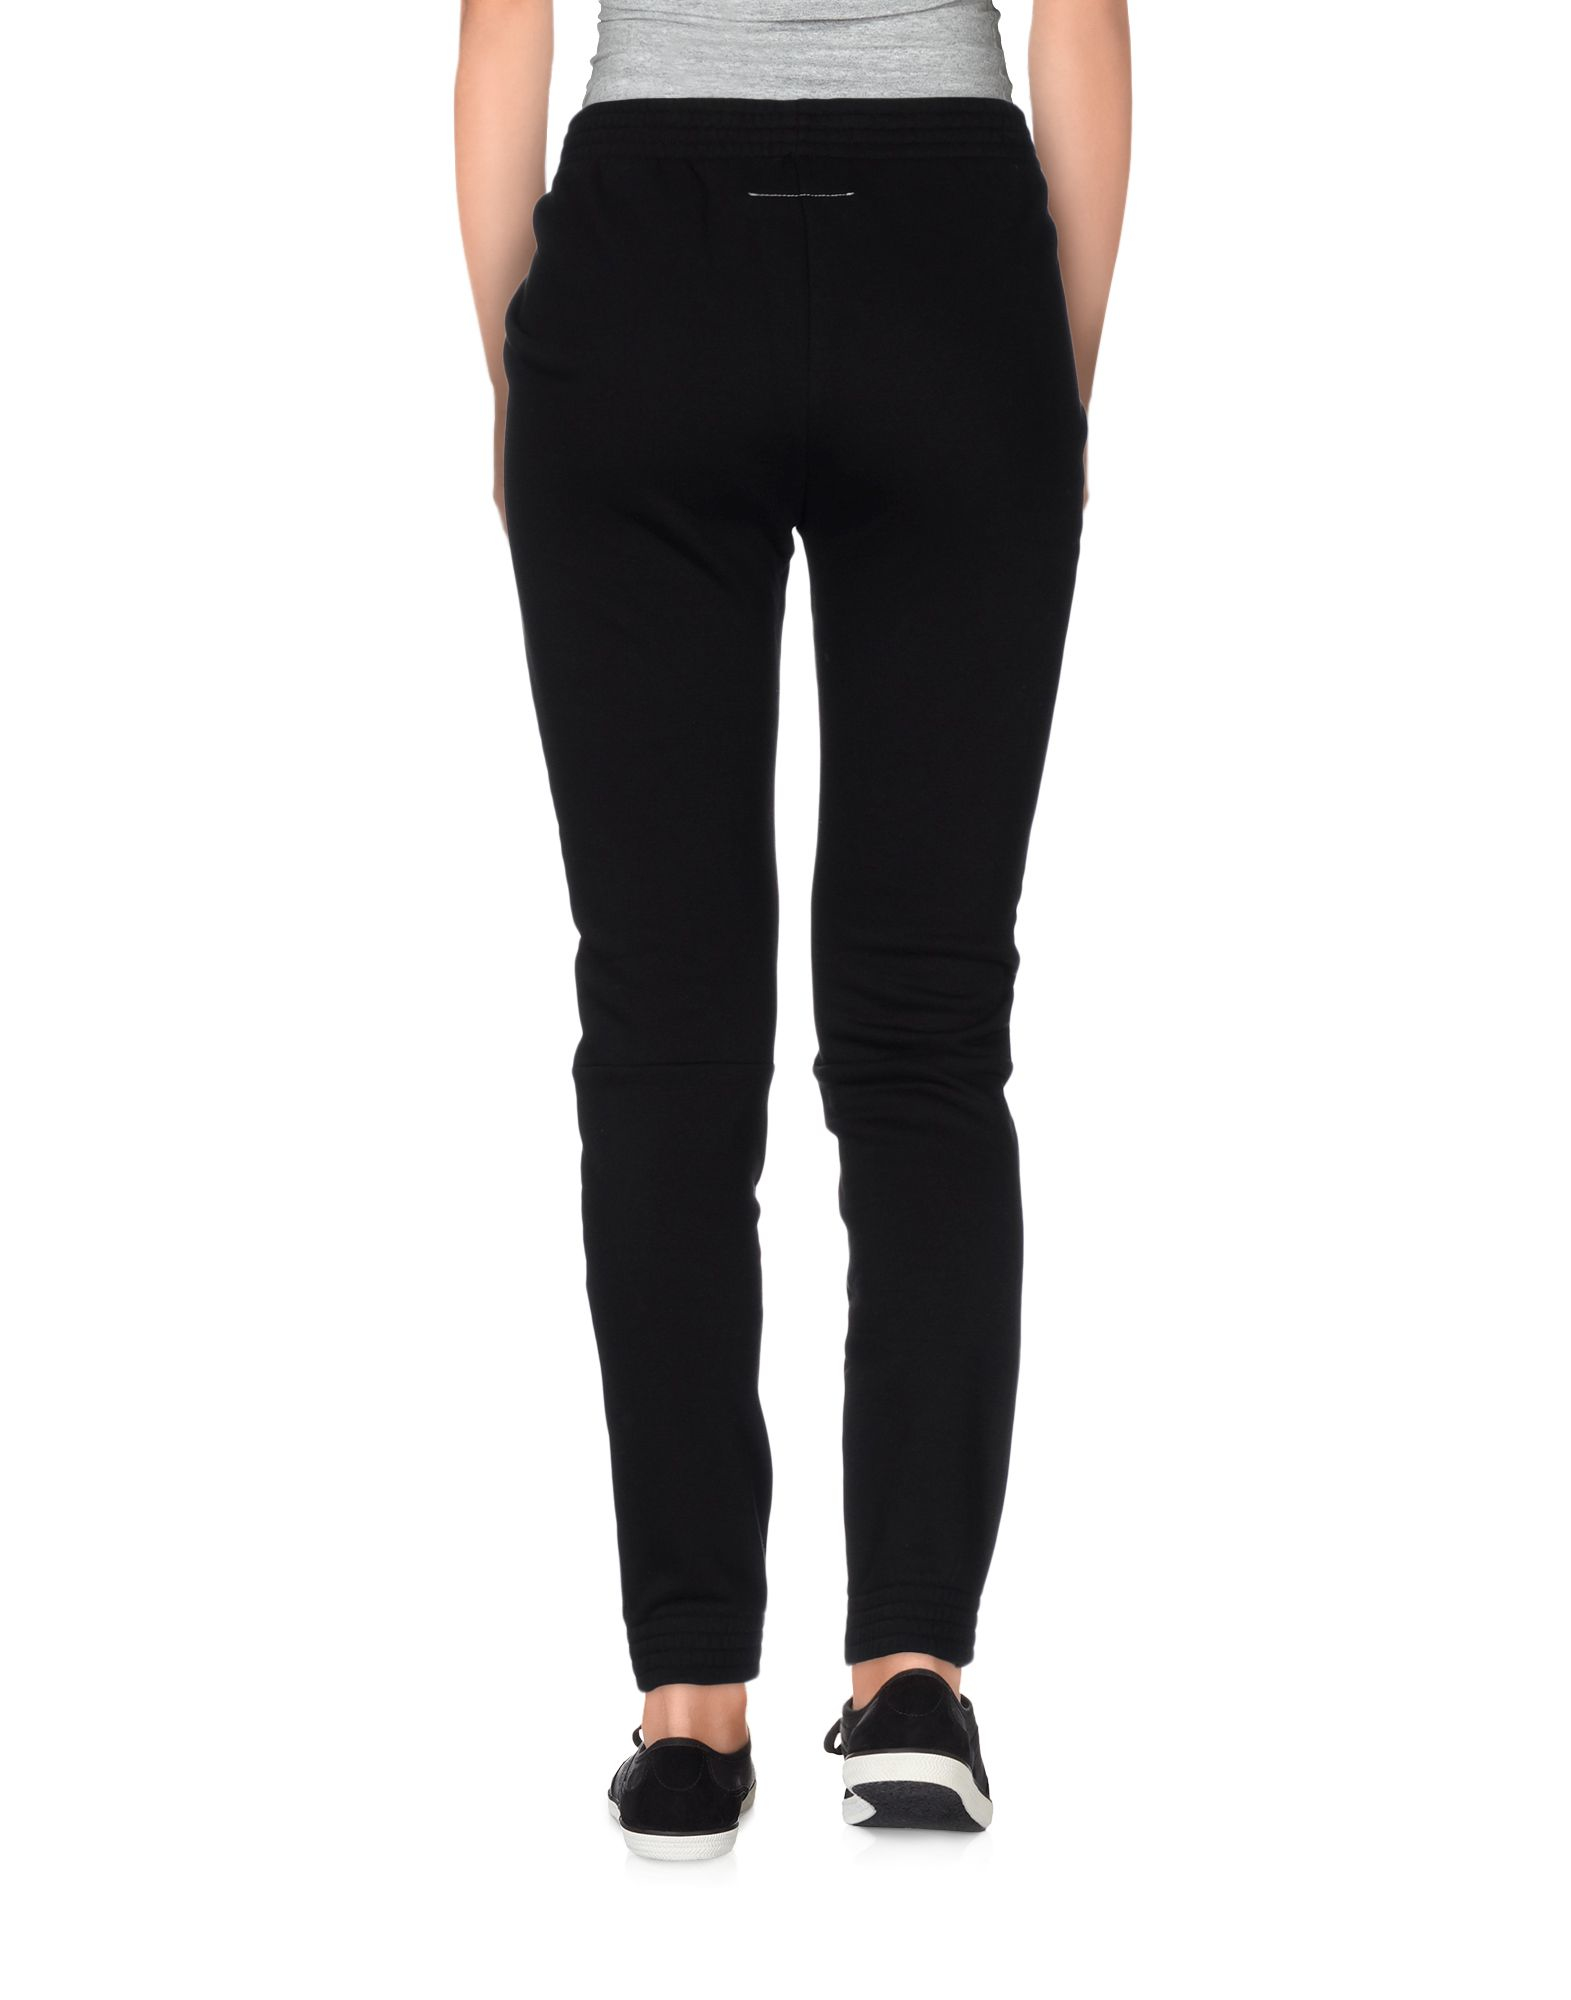 Mm6 by maison martin margiela casual trouser in black lyst for 10 moulmein rise la maison